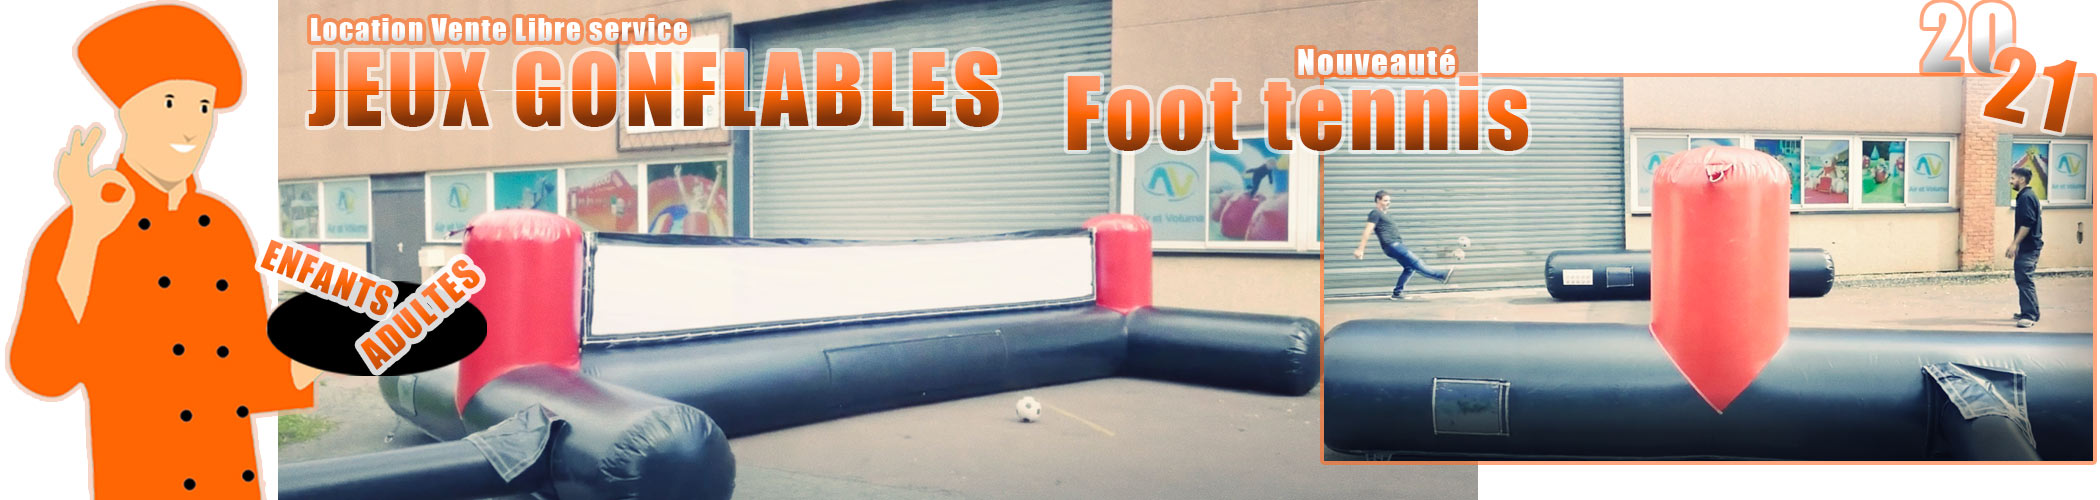 location vente jeux gonflables foot tennis enfants adultes Elite Animation